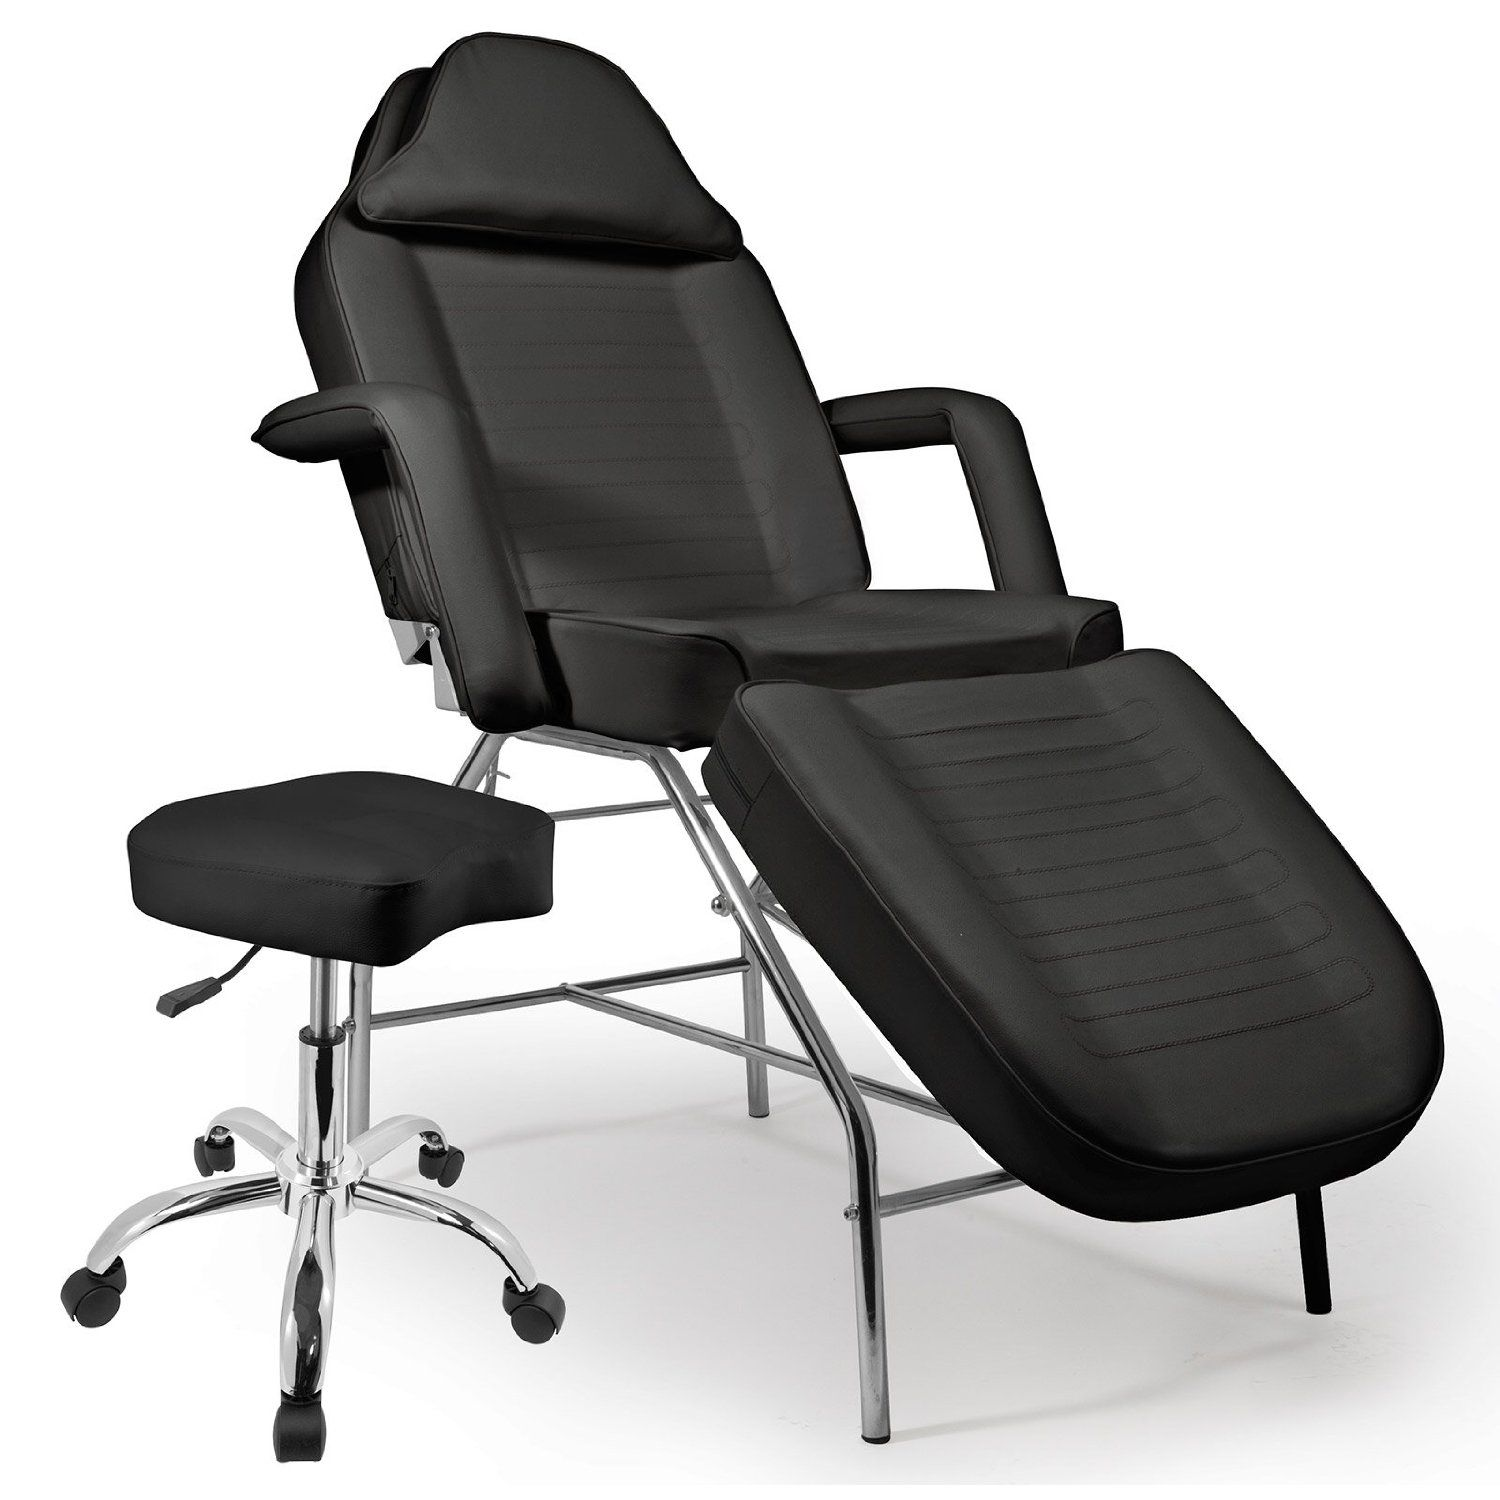 Saloniture Professional Multipurpose Salon Chair